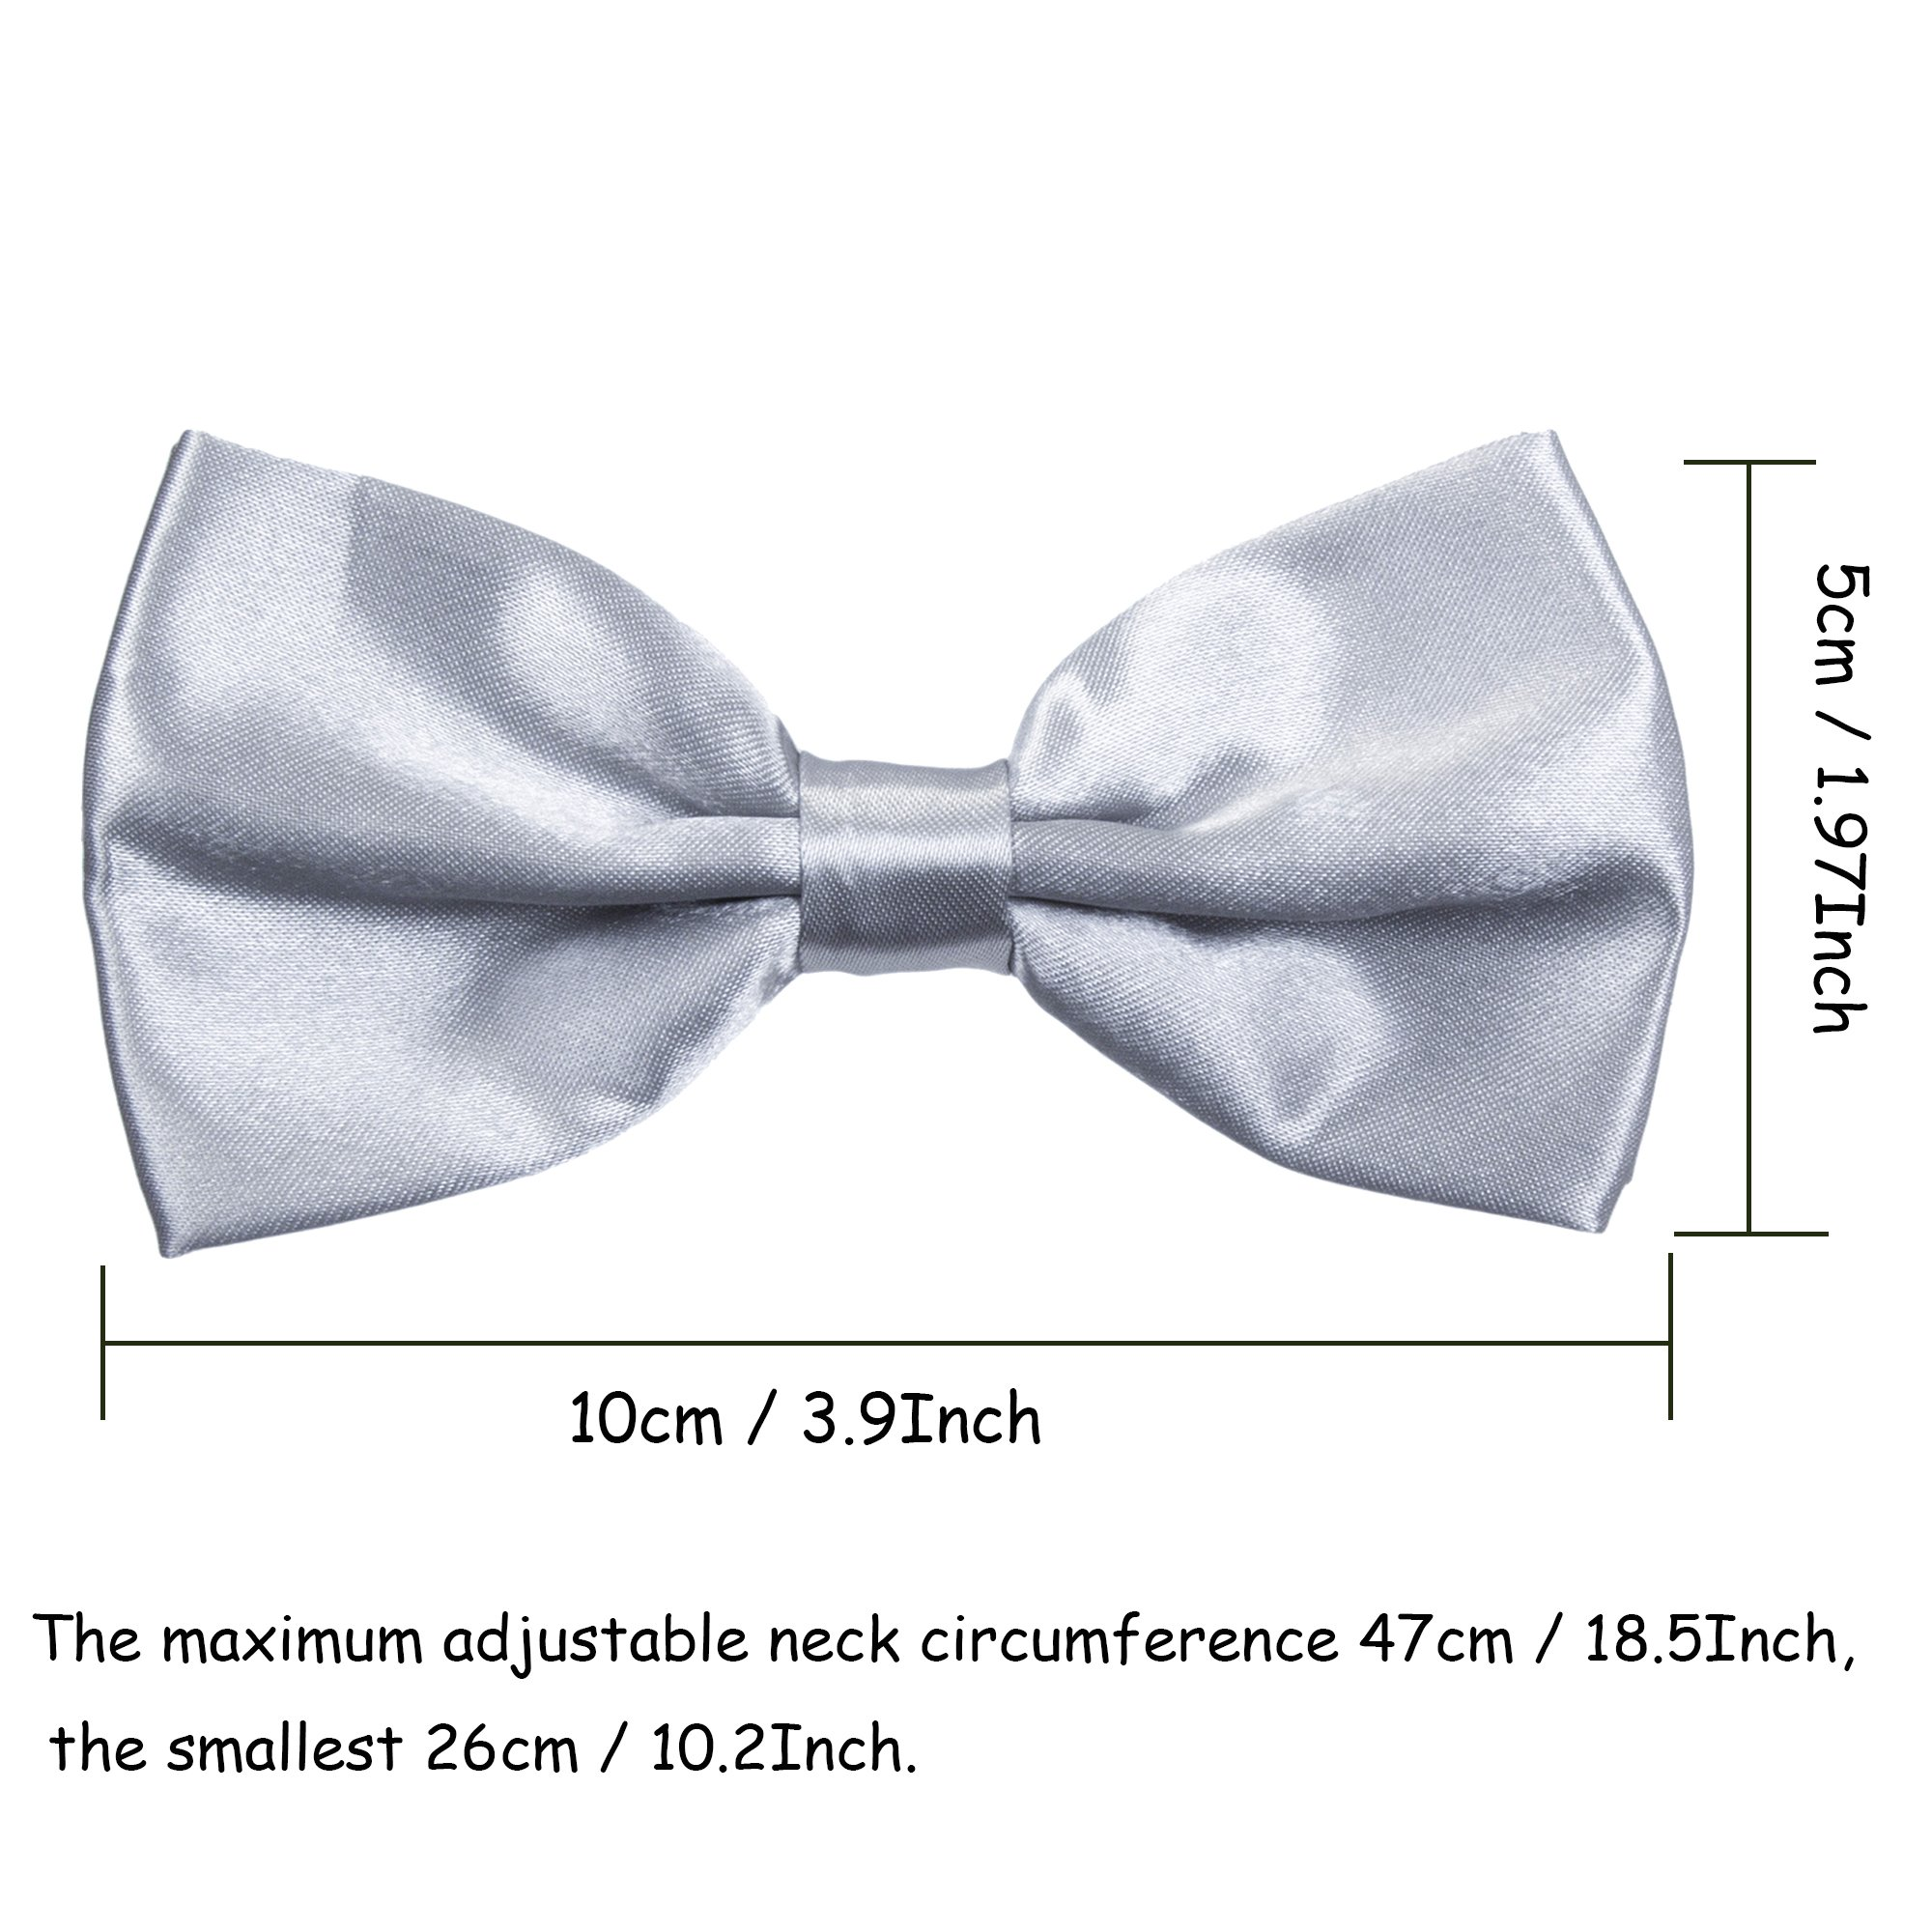 Boys Children Formal Bow Ties - 6 Pack of Solid Color Adjustable Pre Tied Bowties(Silver) by Kajeer (Image #4)